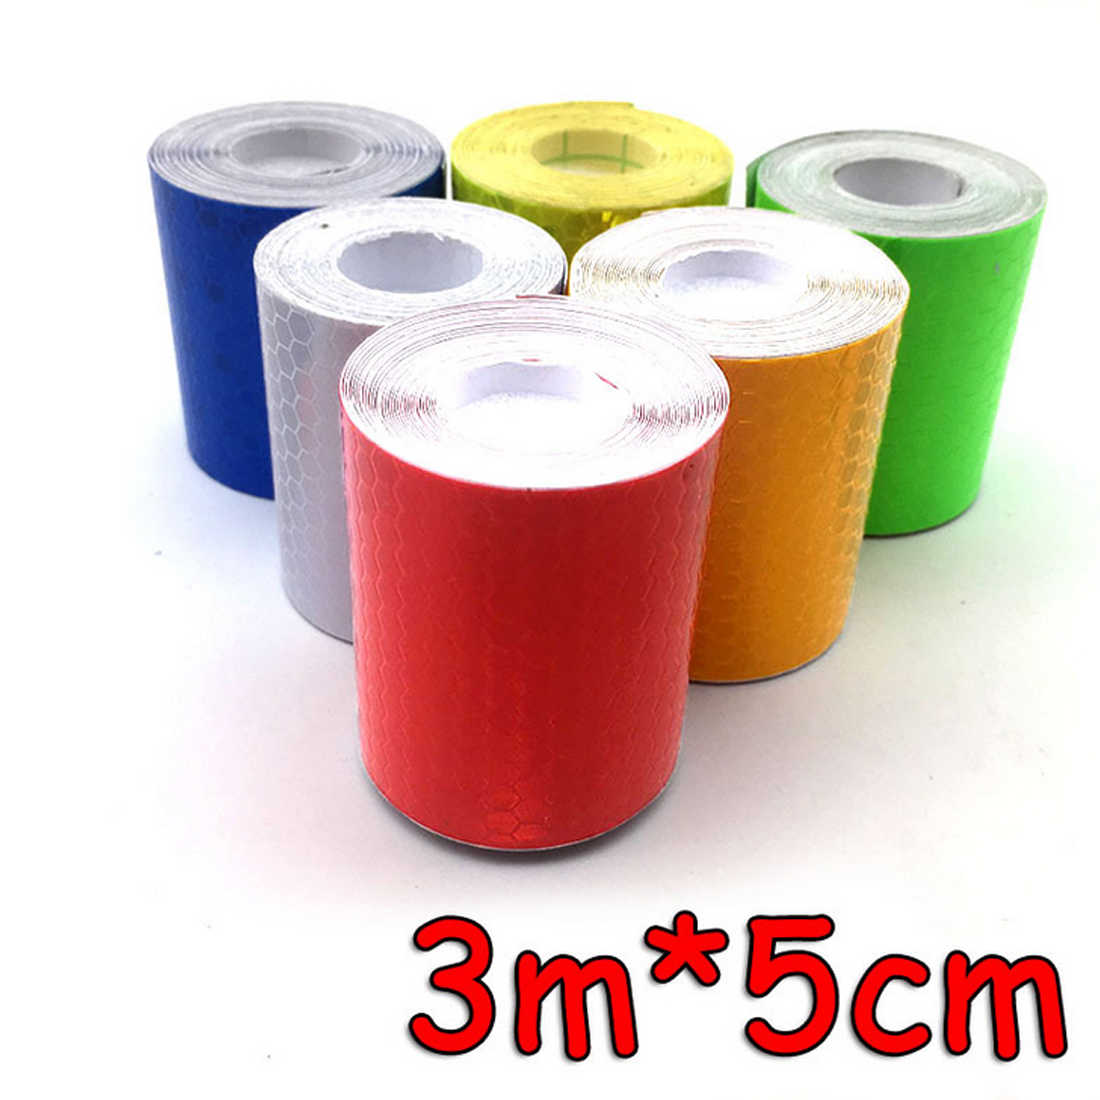 NEW Bicycle Accessories 5cmx3m Reflective Bicycle Stickers Adhesive Tape For Bike Safety Reflective Bike Stickers